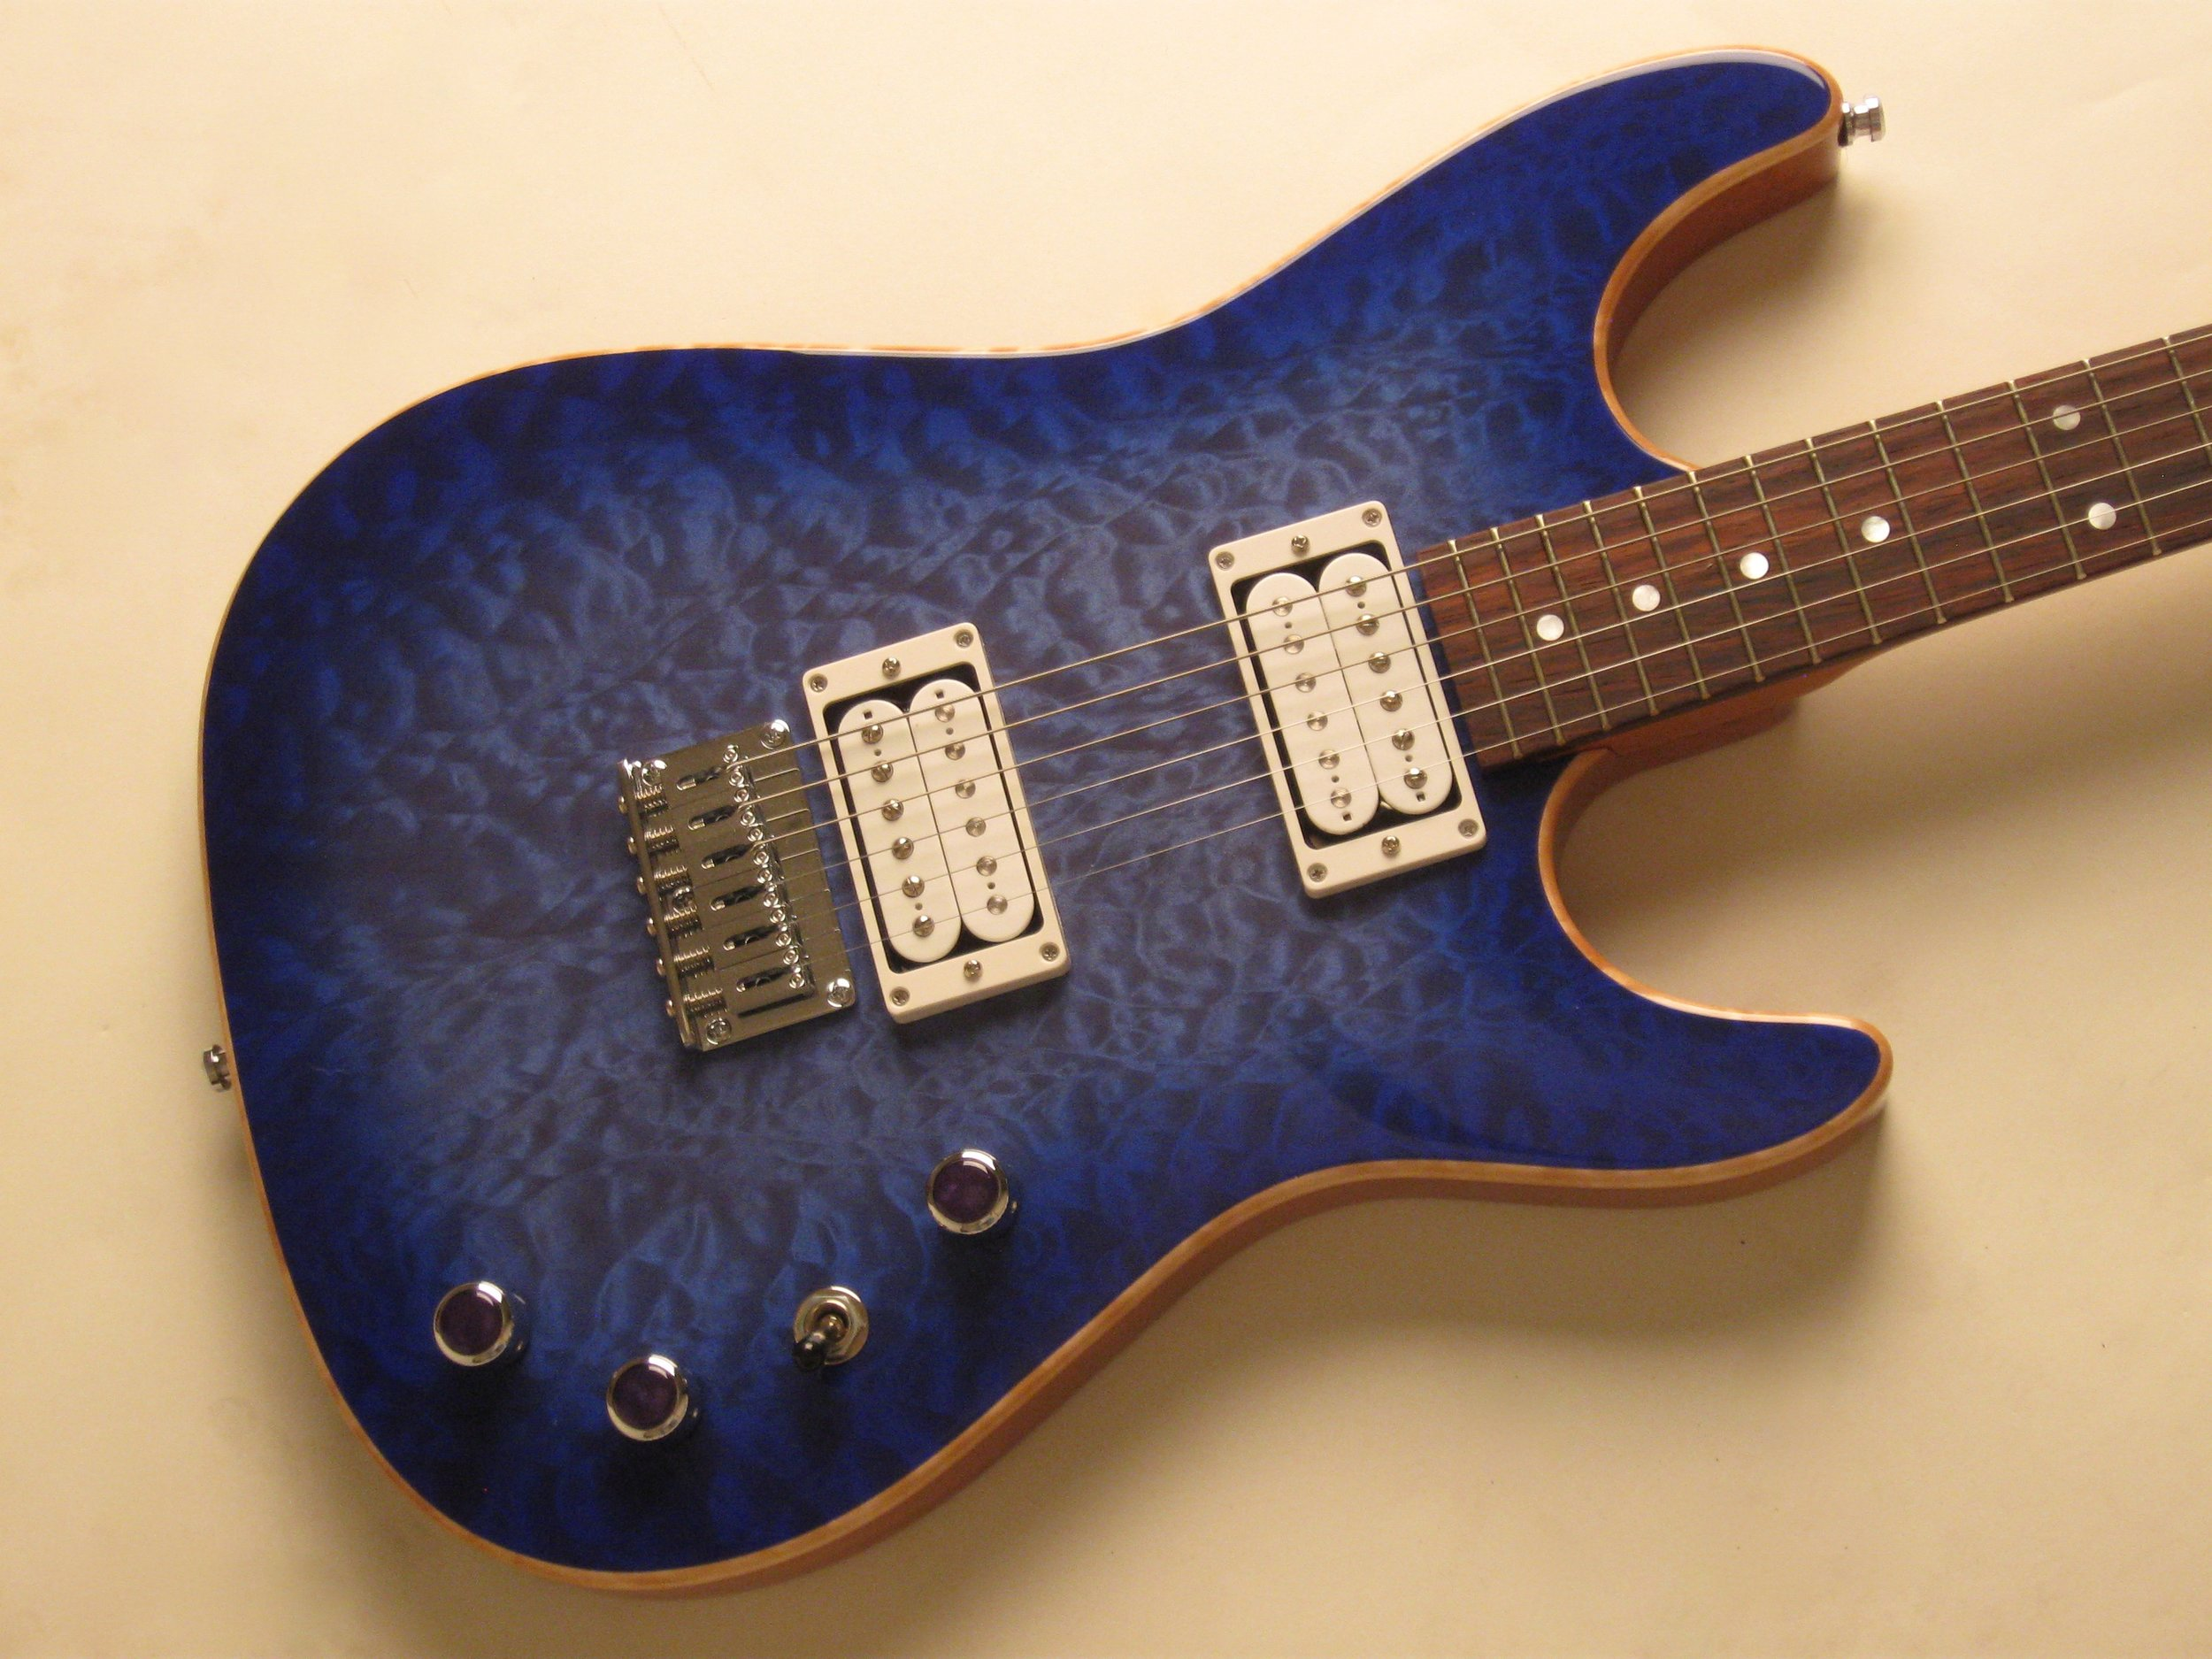 Rallye with quilted maple drop top